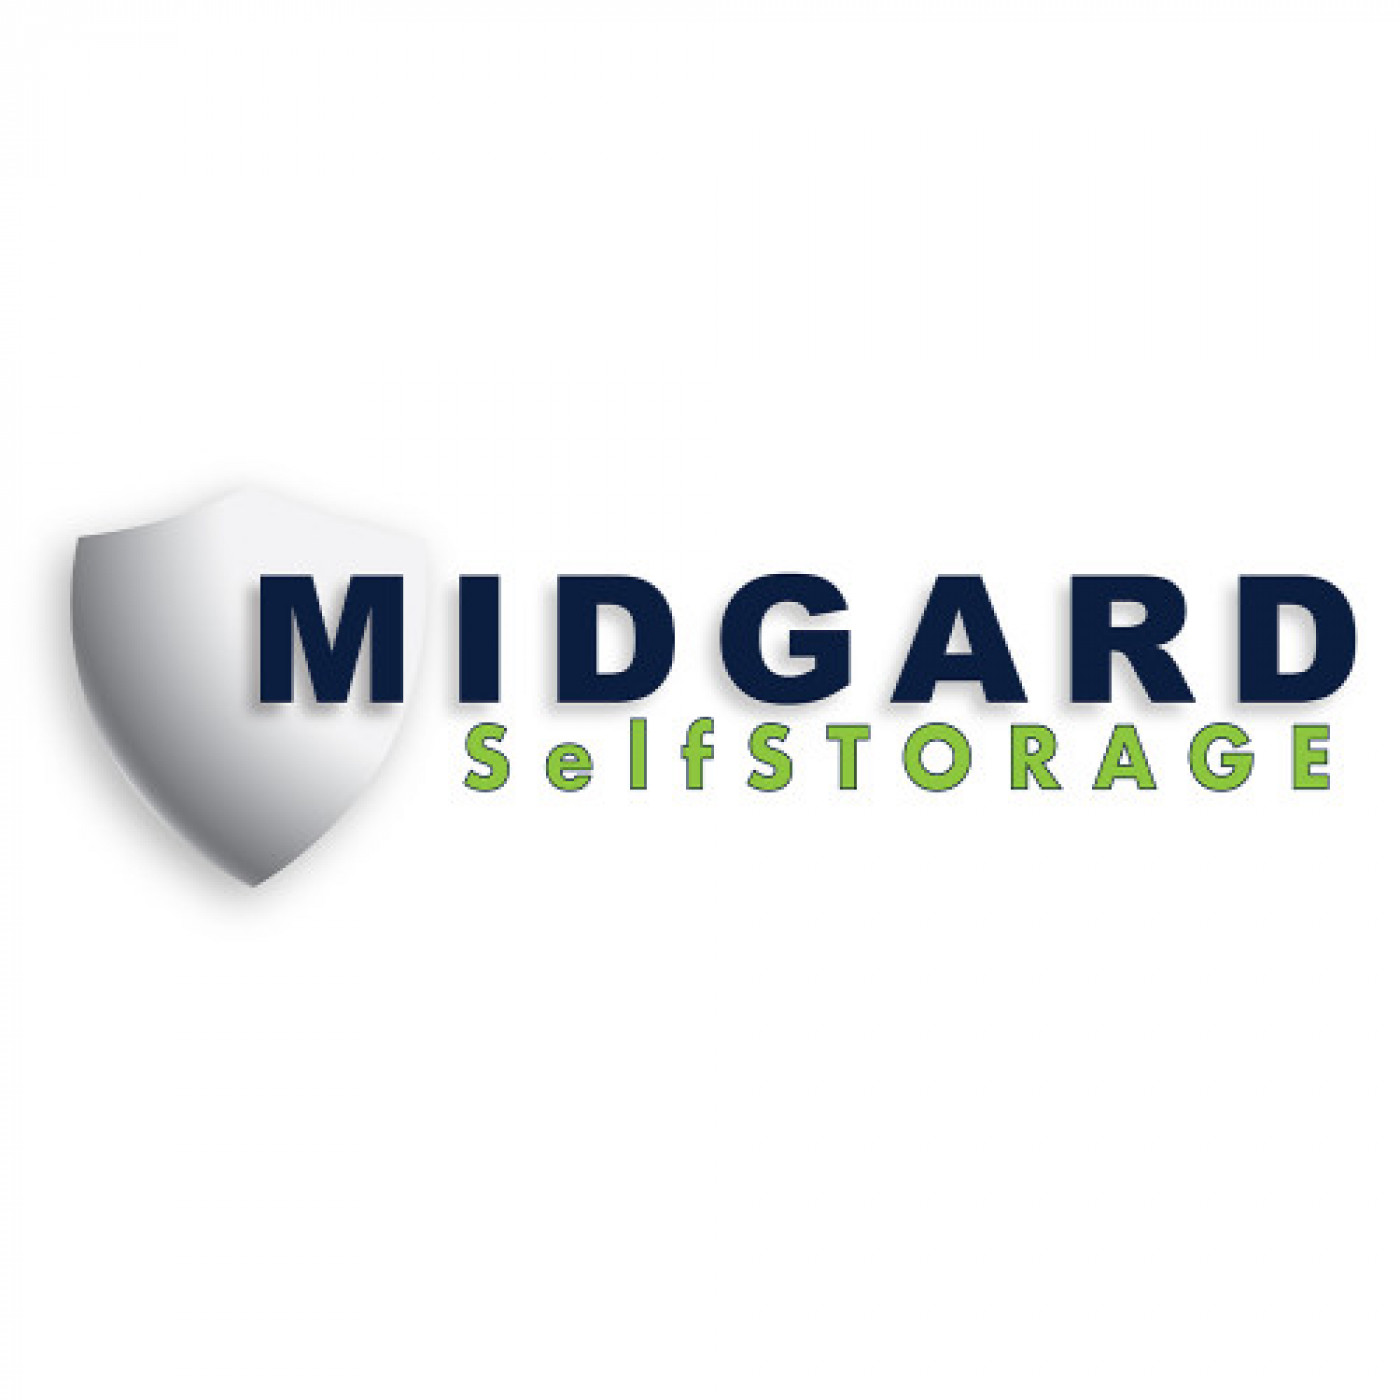 Welcome: Midgard Self Storage